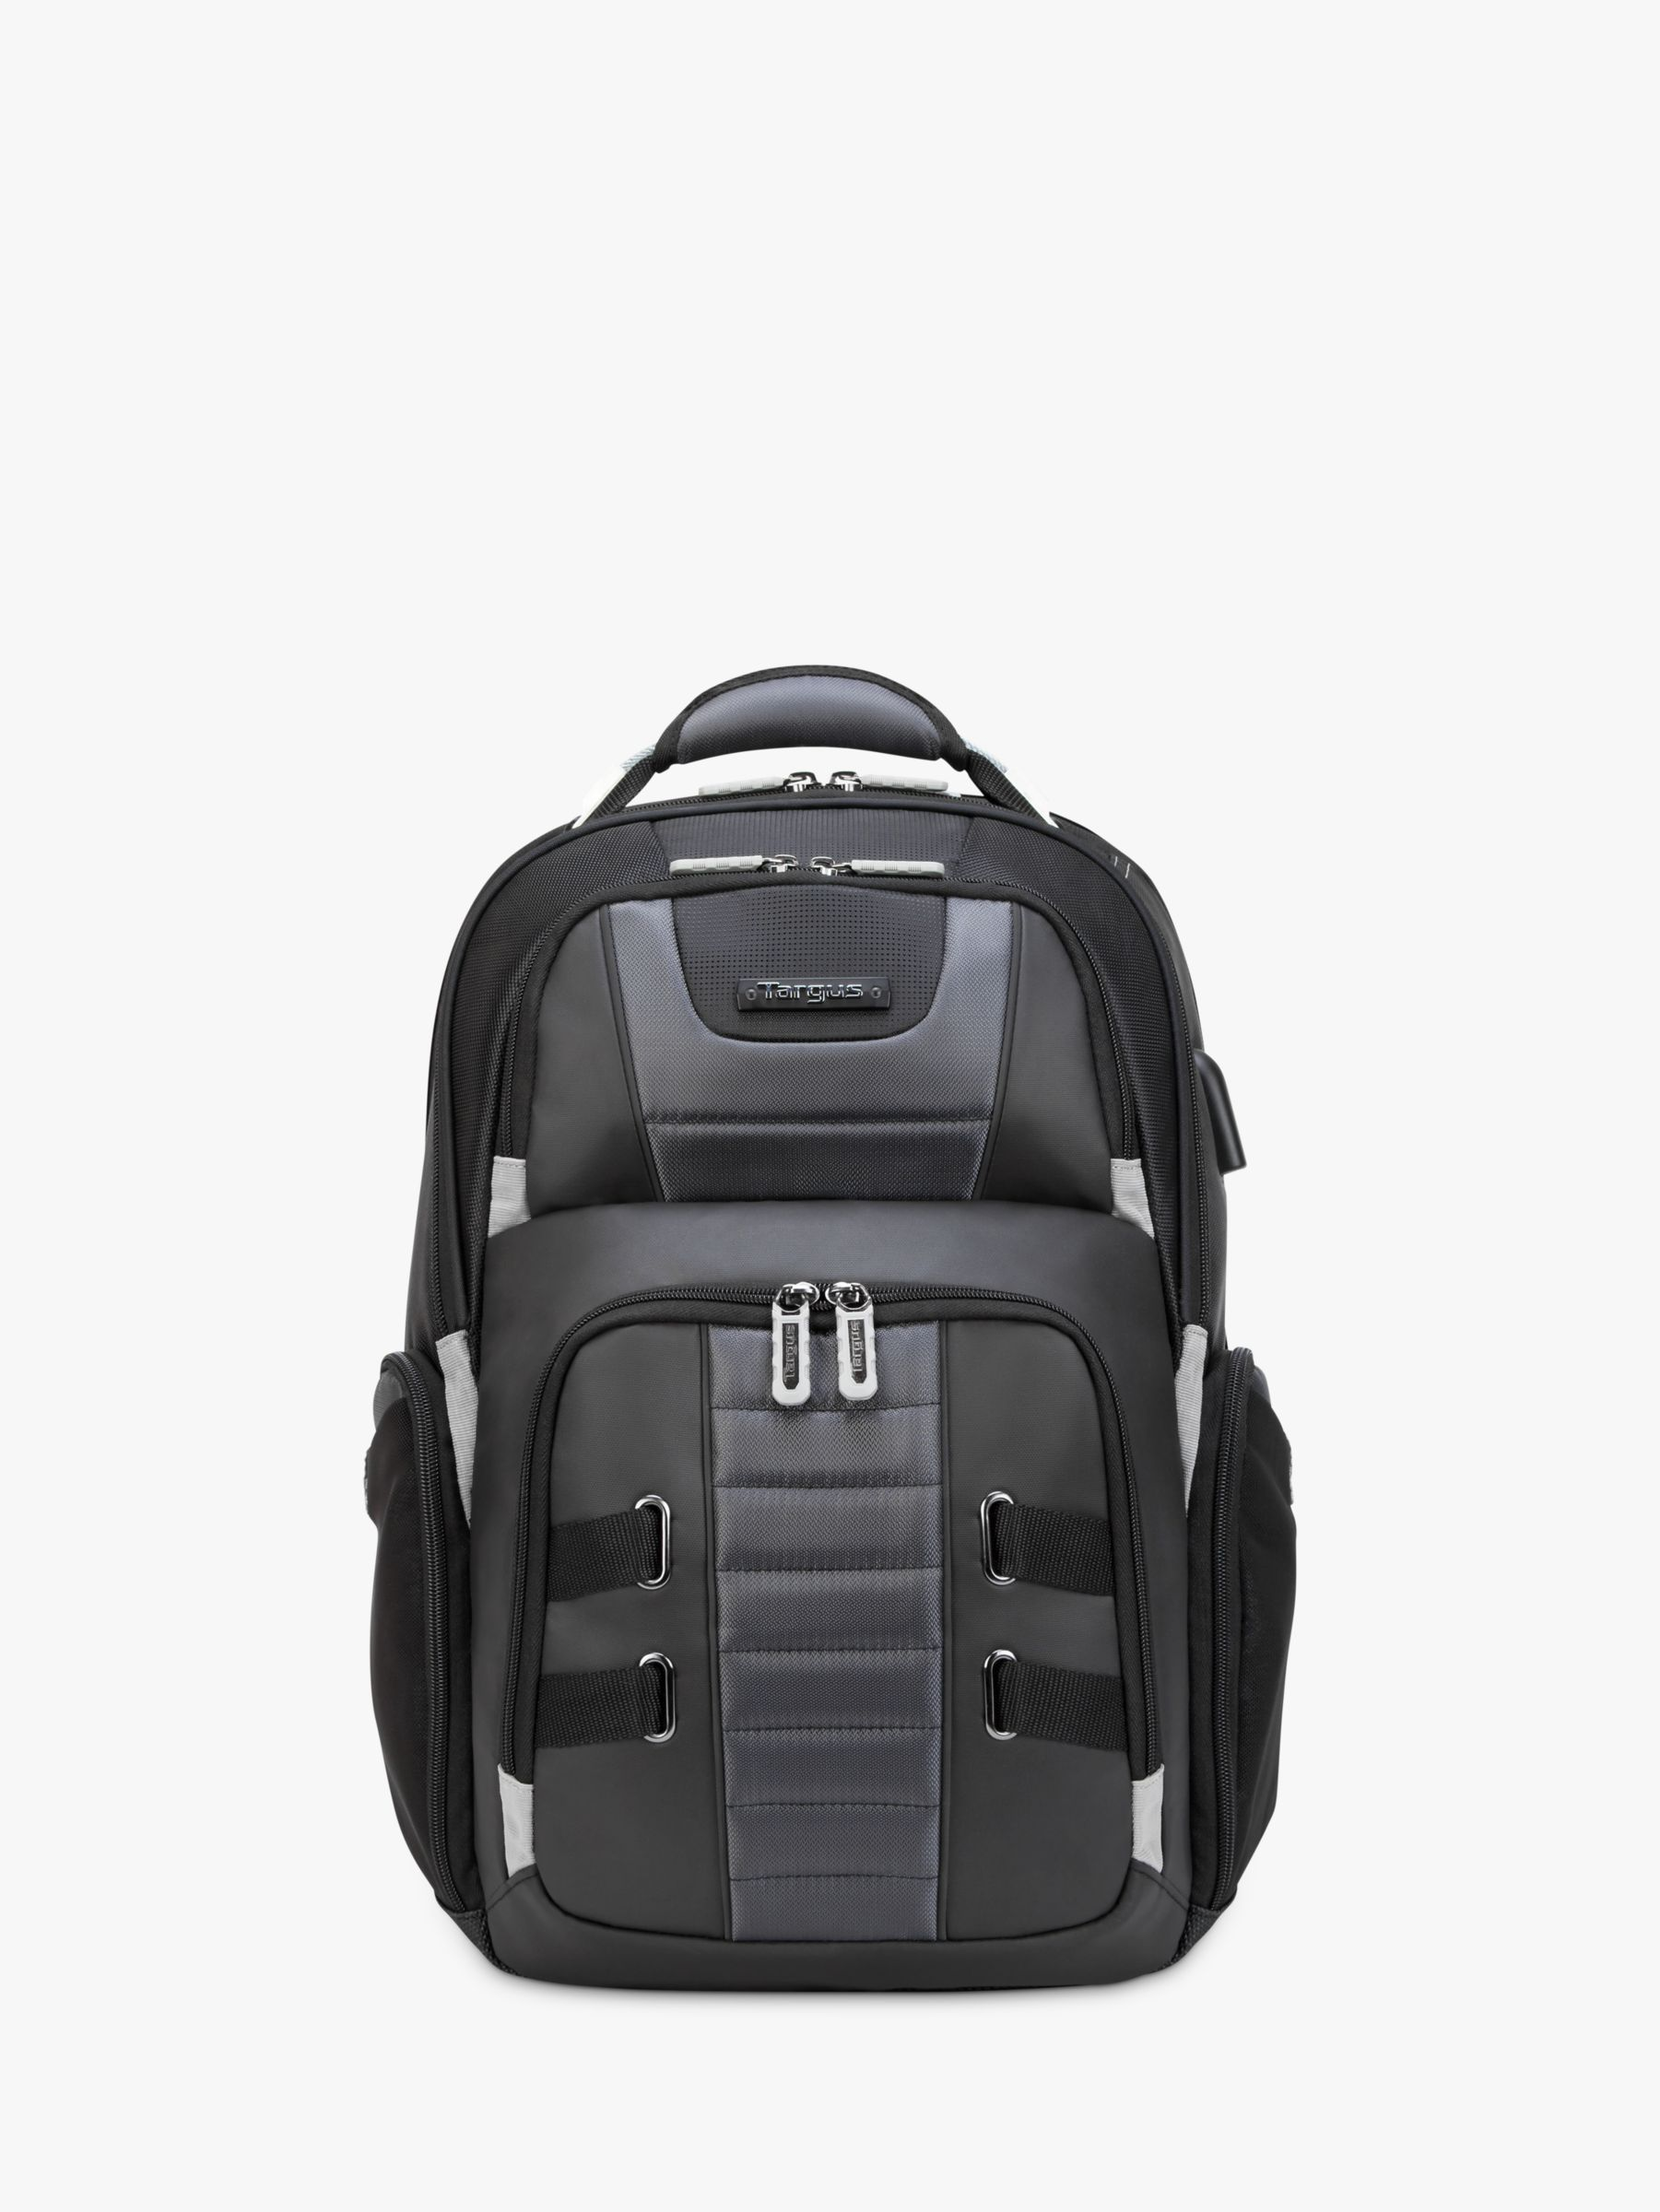 Targus Targus TSB957GL Backpack for Laptops 15.6 to 17.3, Black